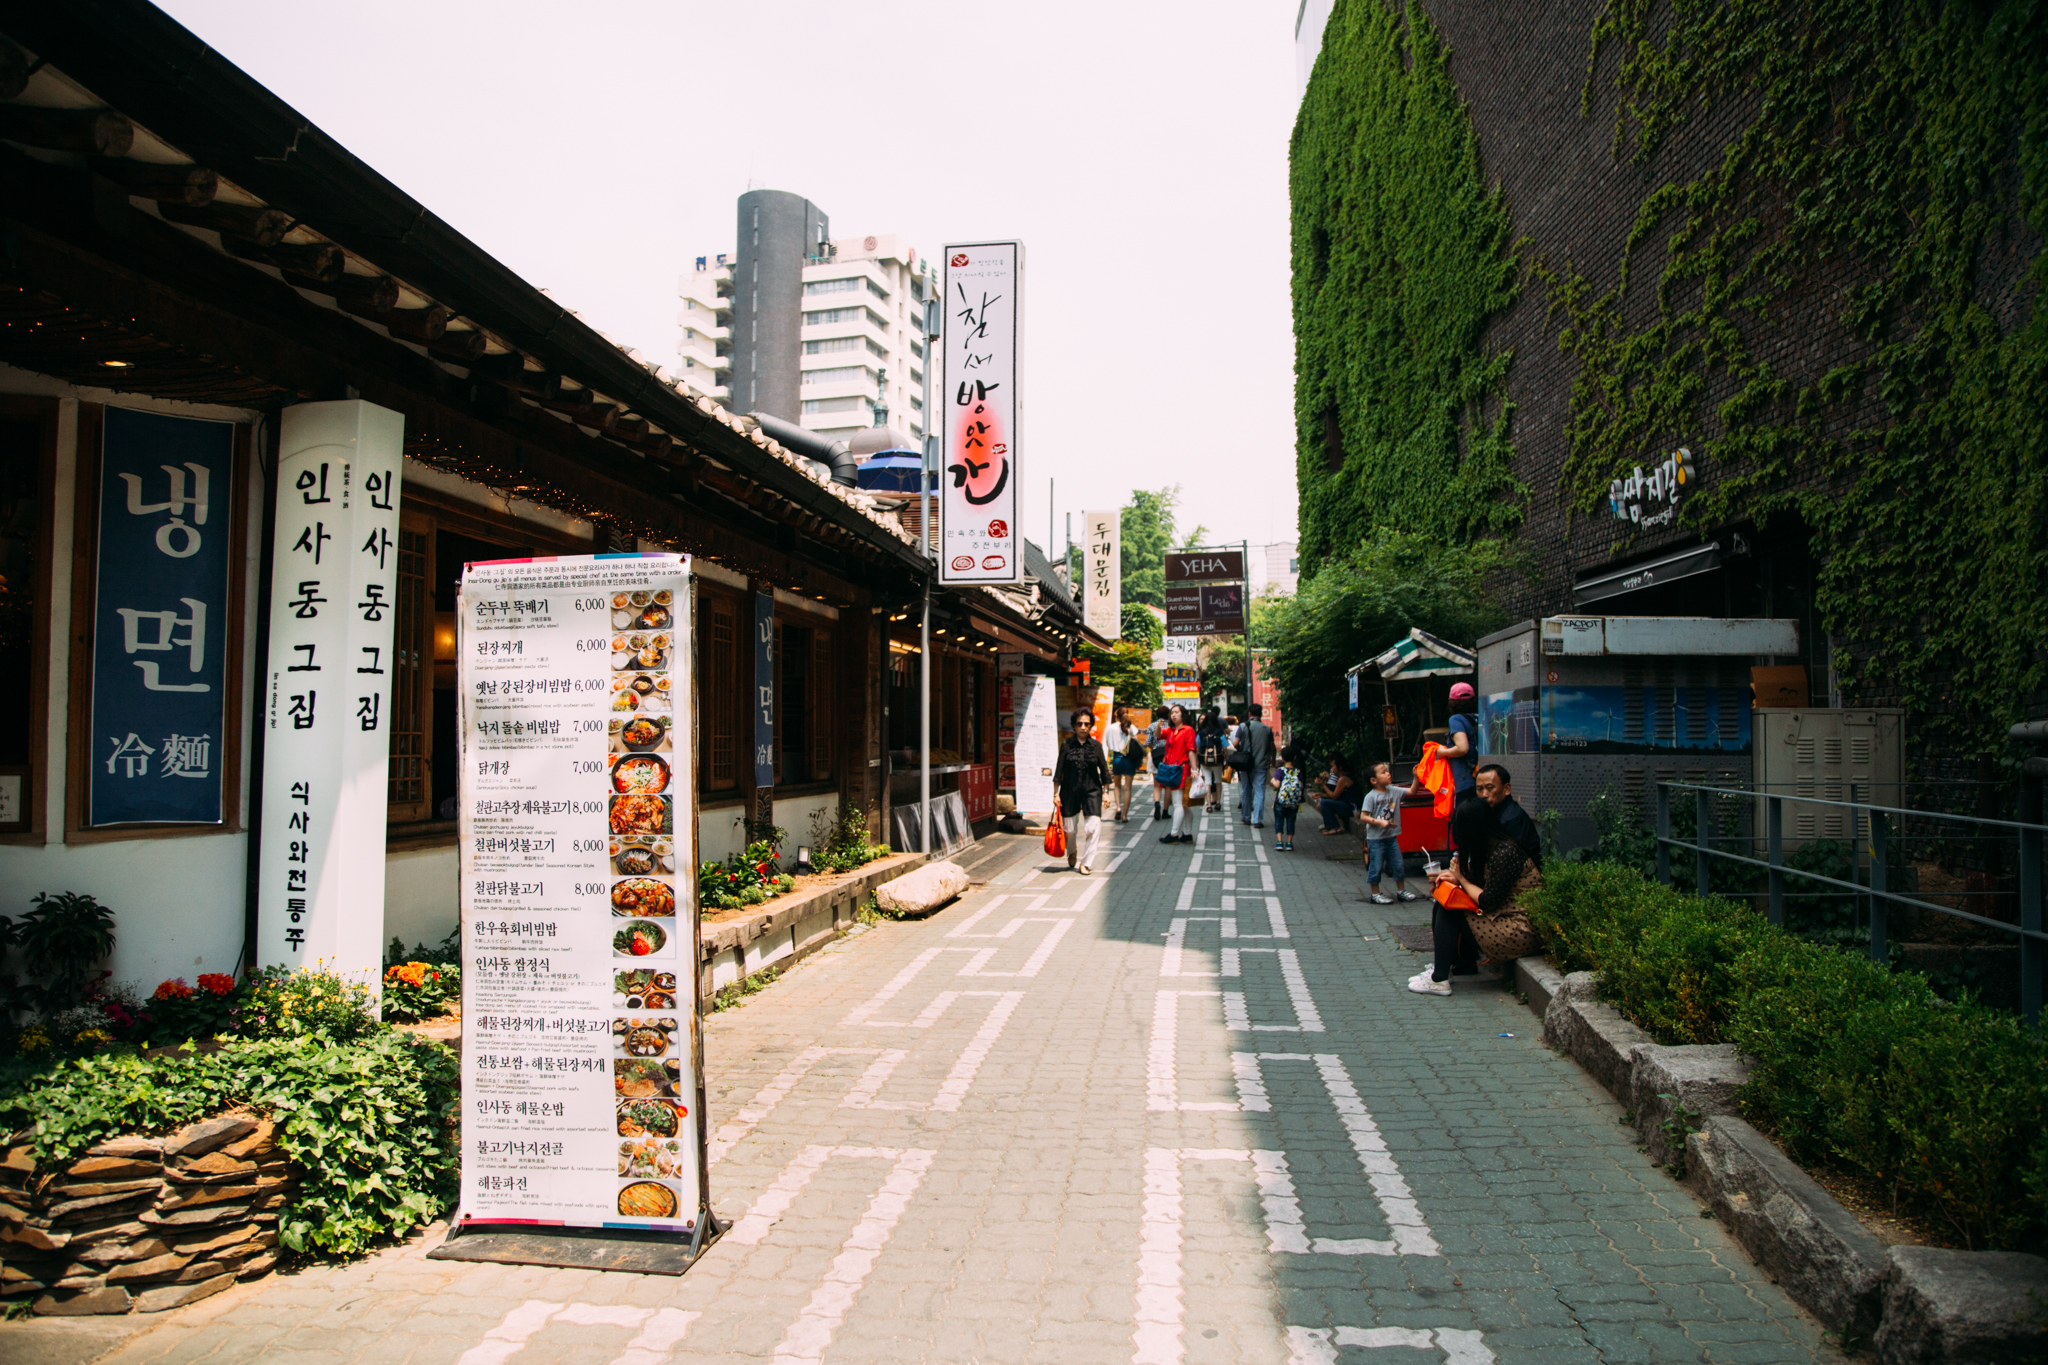 Afterwards we headed to Insa-dong Street. It's chock full of Korean traditional culture with antique art, street vendors, and traditional teahouses.